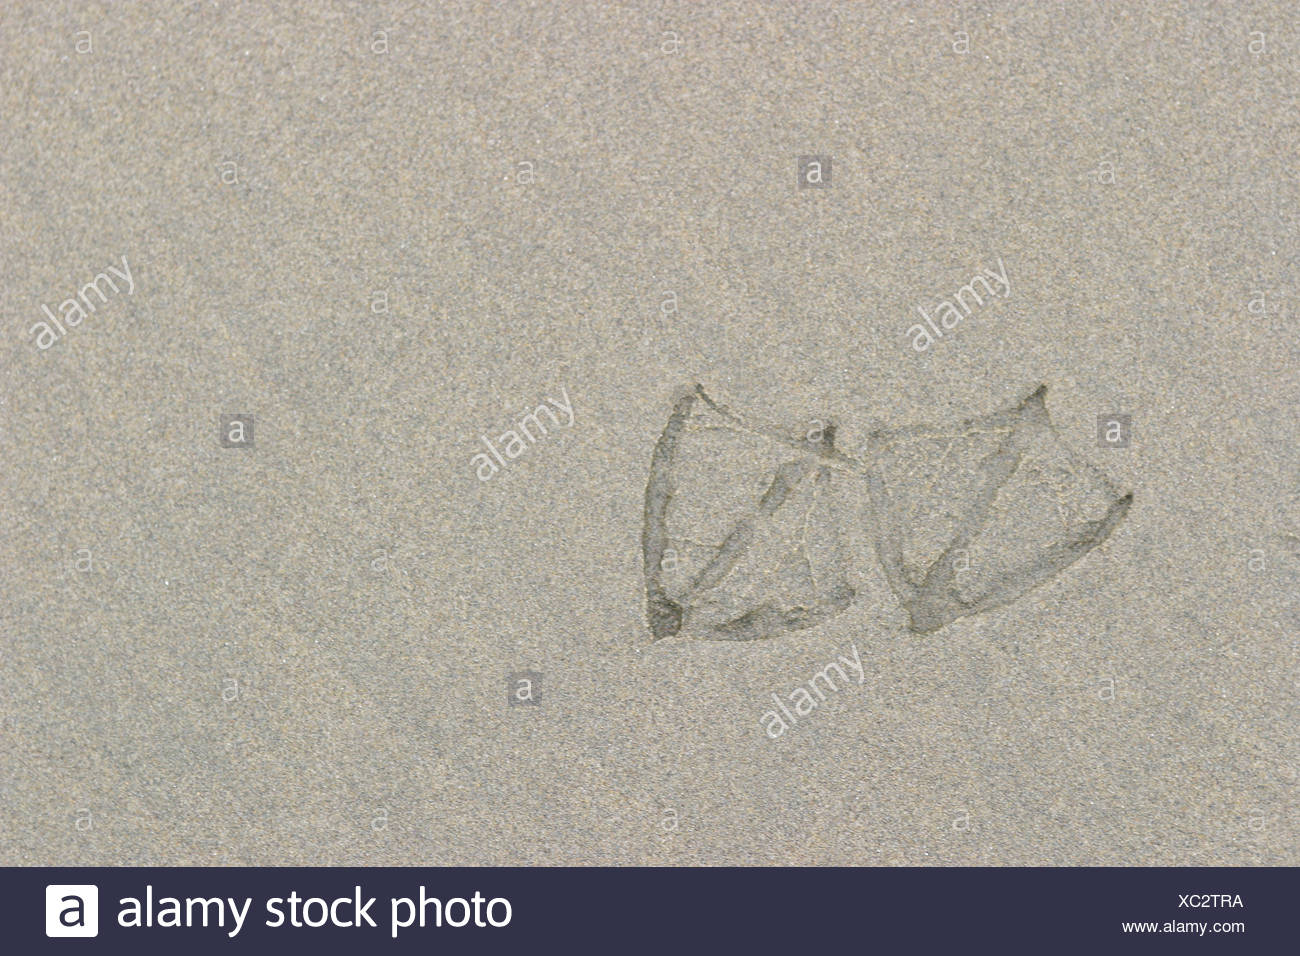 Footprints on the beach left by a gull in Tofino, British Columbia, Canada. - Stock Image